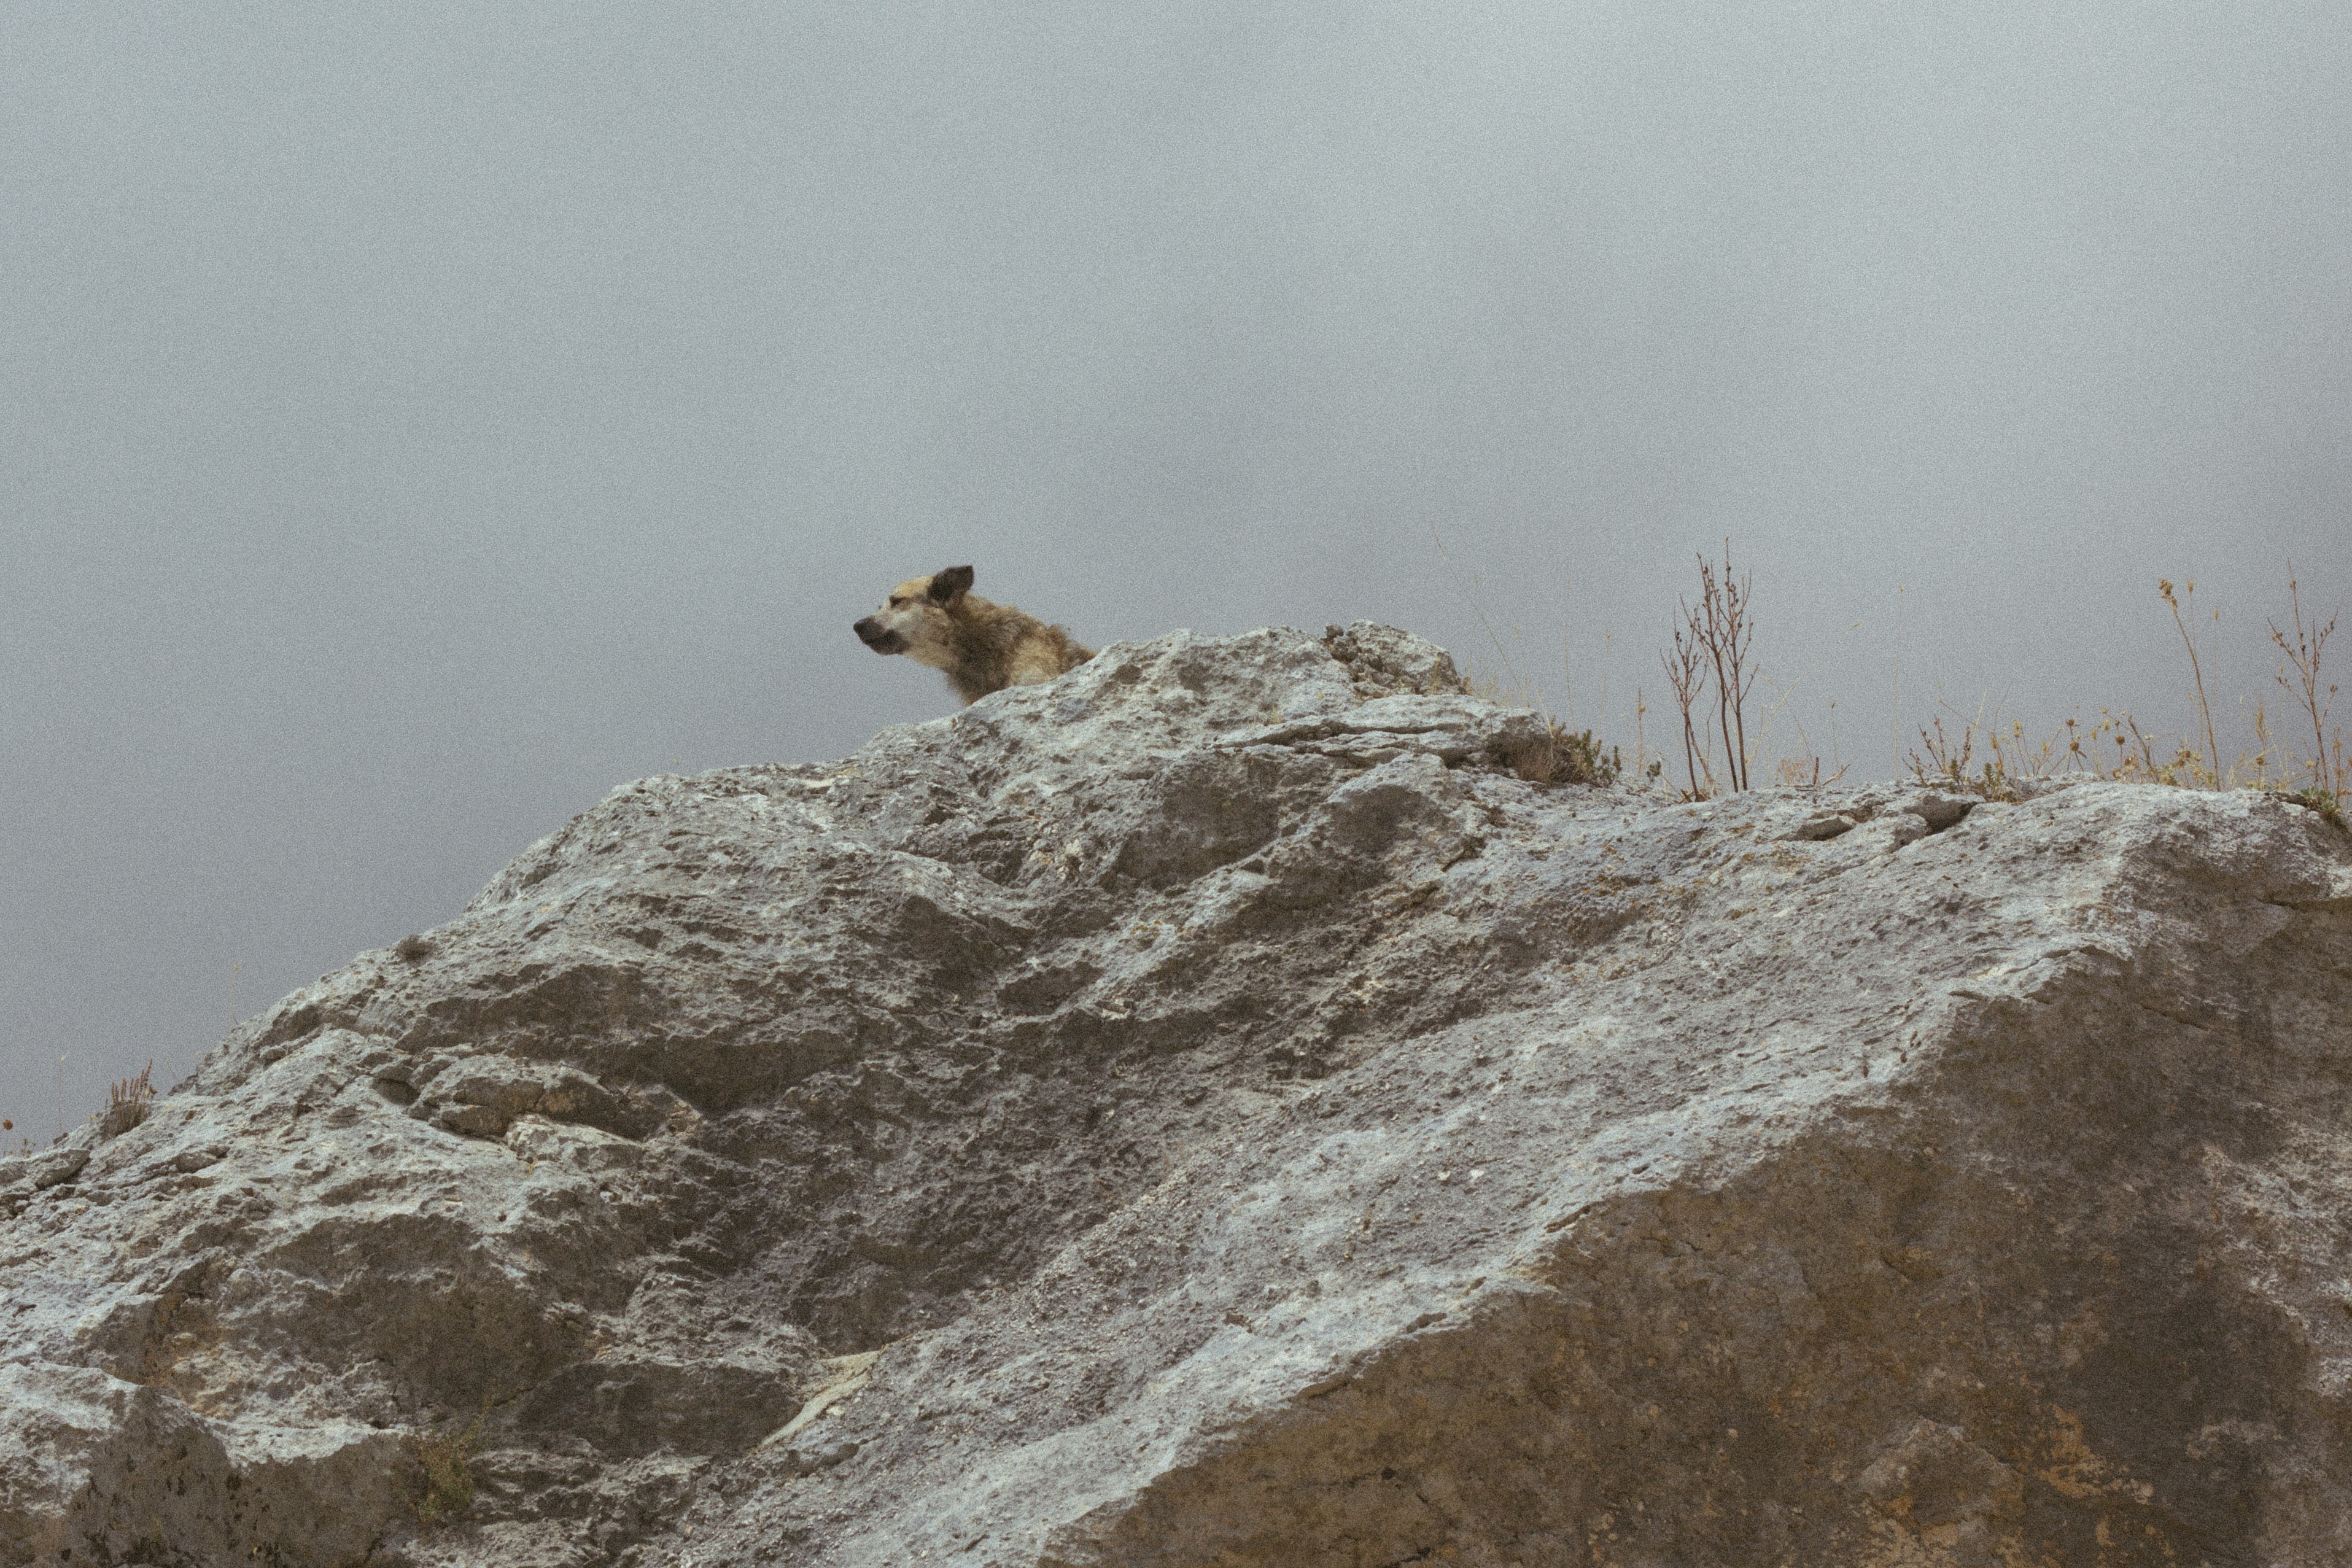 A wild dog on top of a rocky ledge looking off into the distance